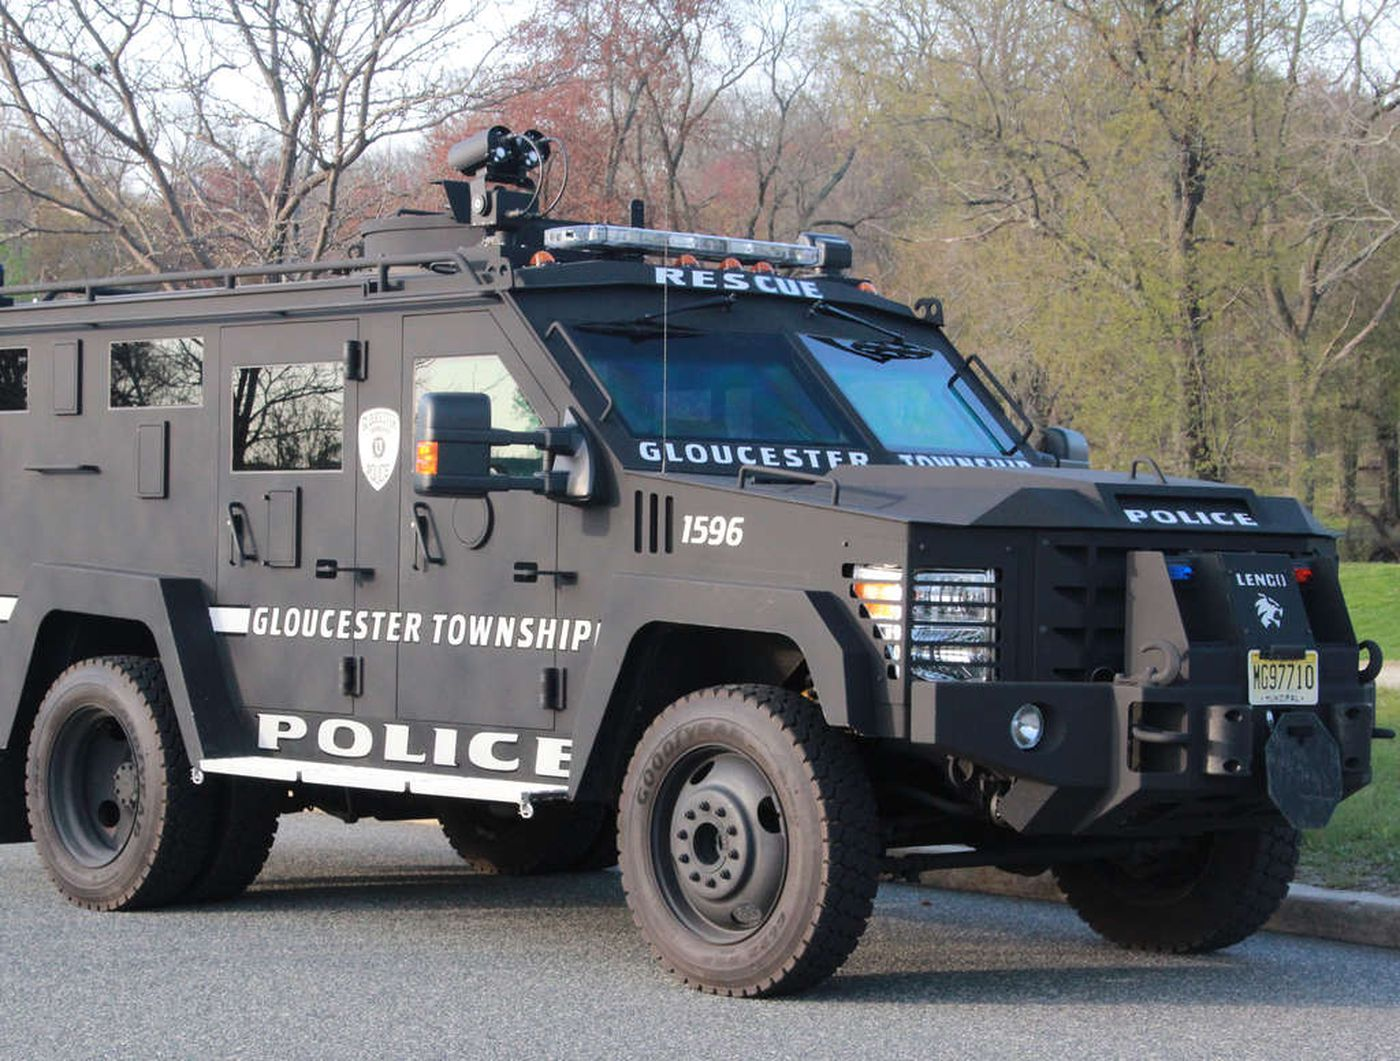 Amid national alarm on police tactics, area arsenals also